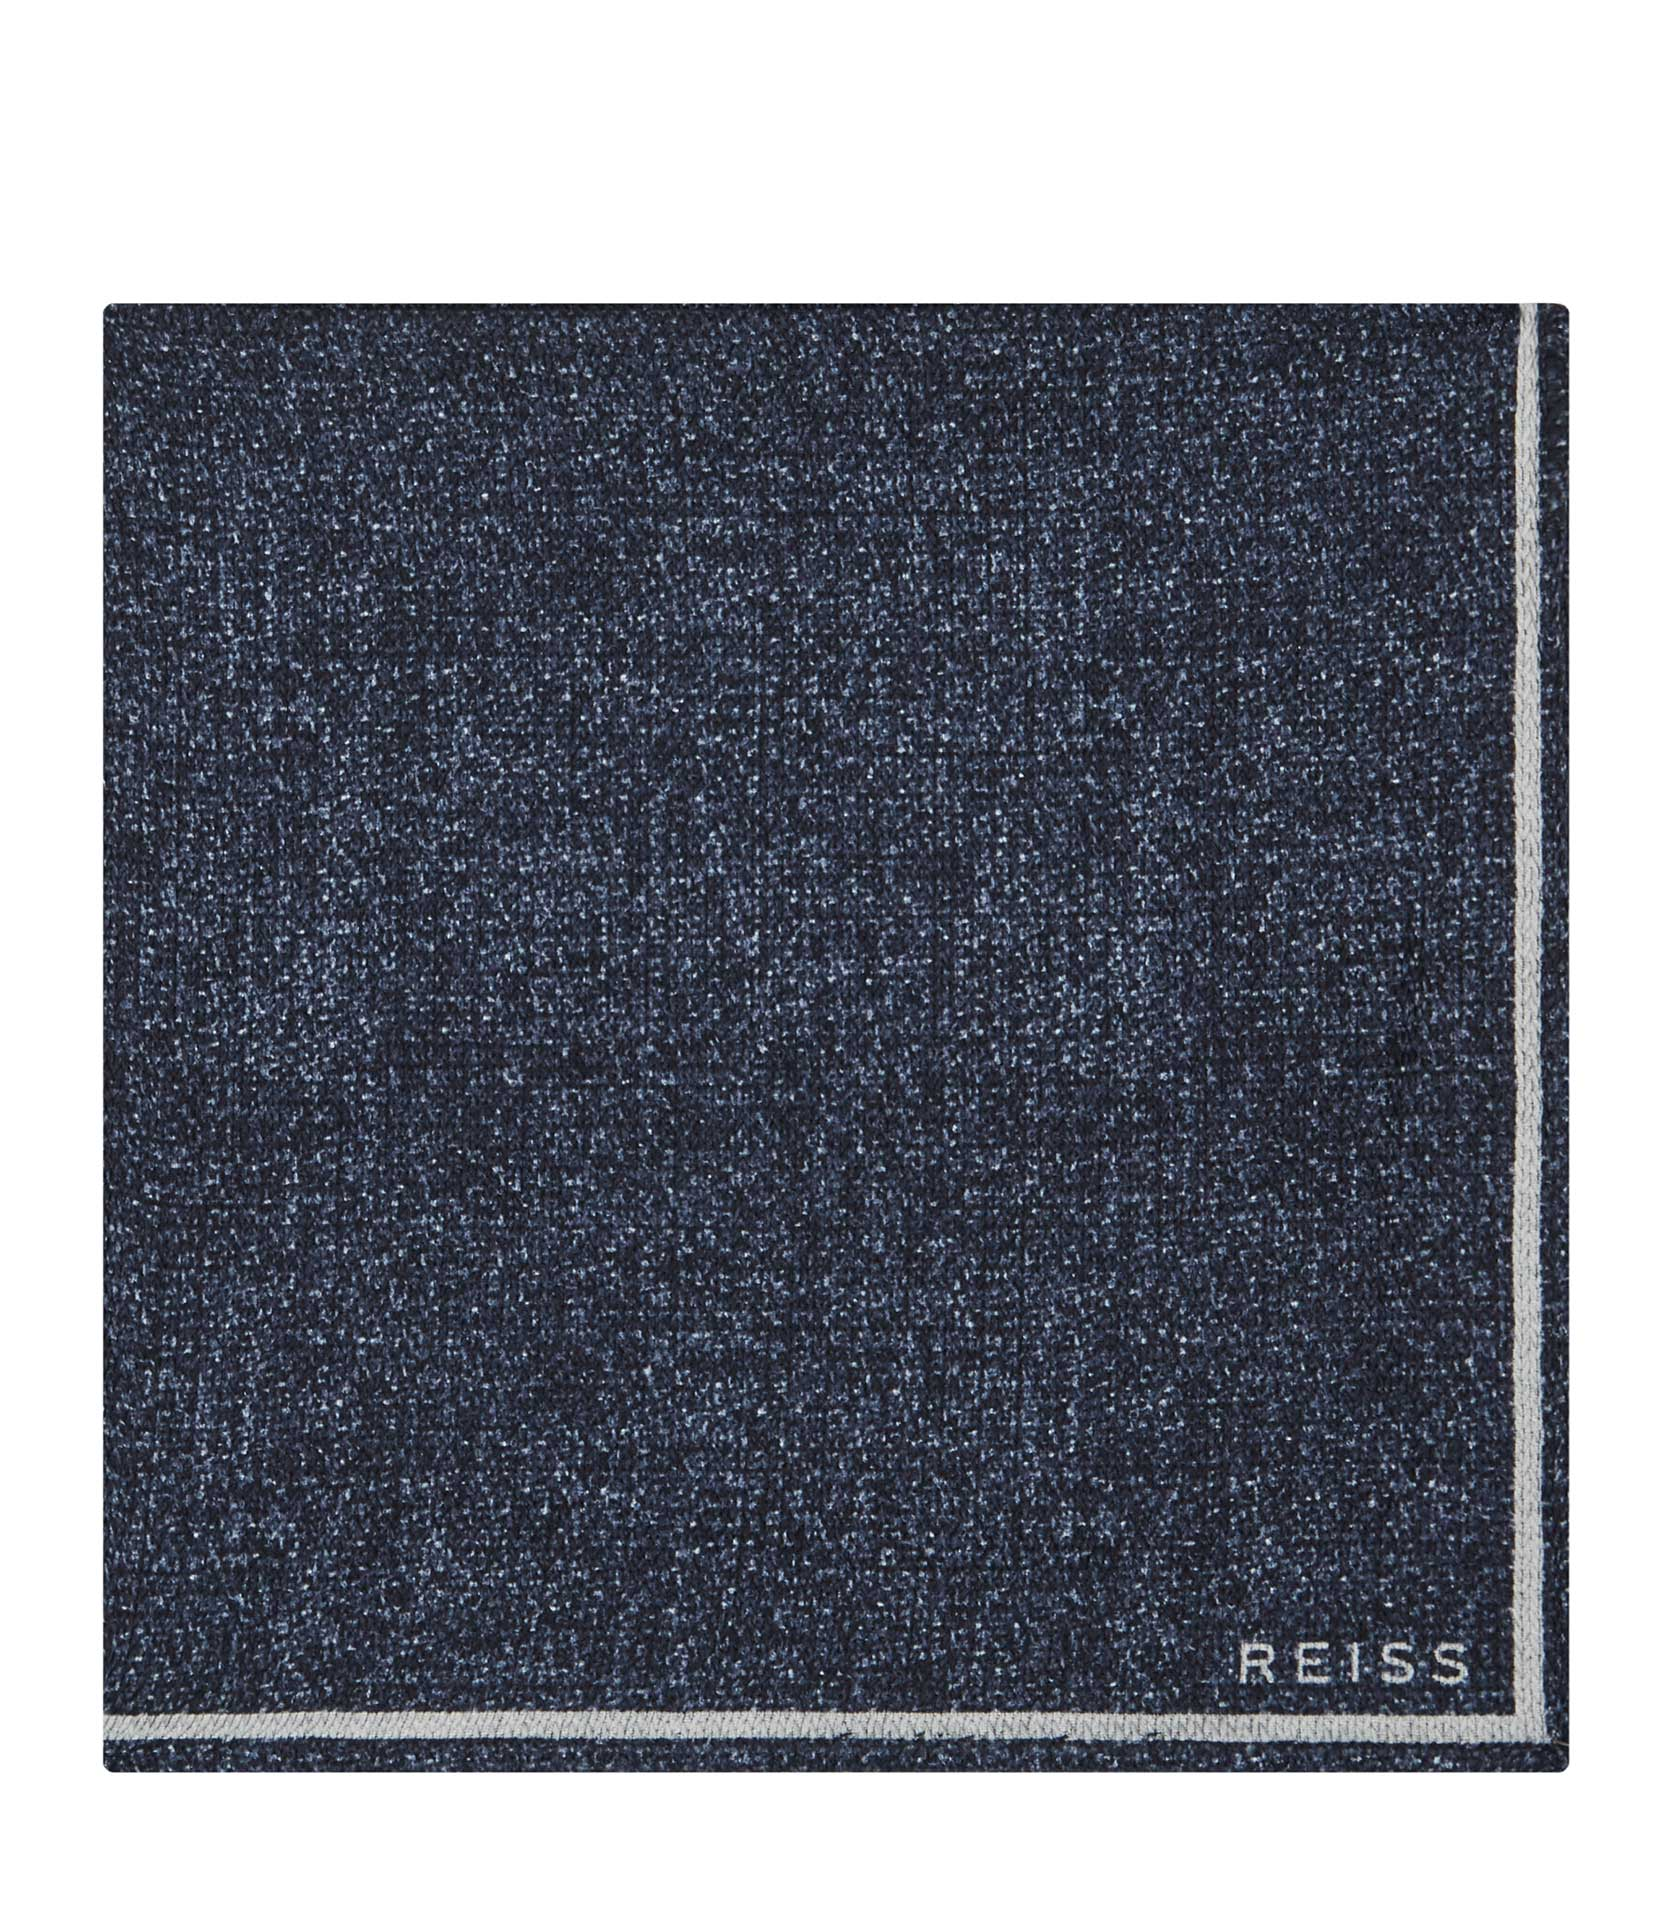 Reiss Navy Craven Silk Pocket Square